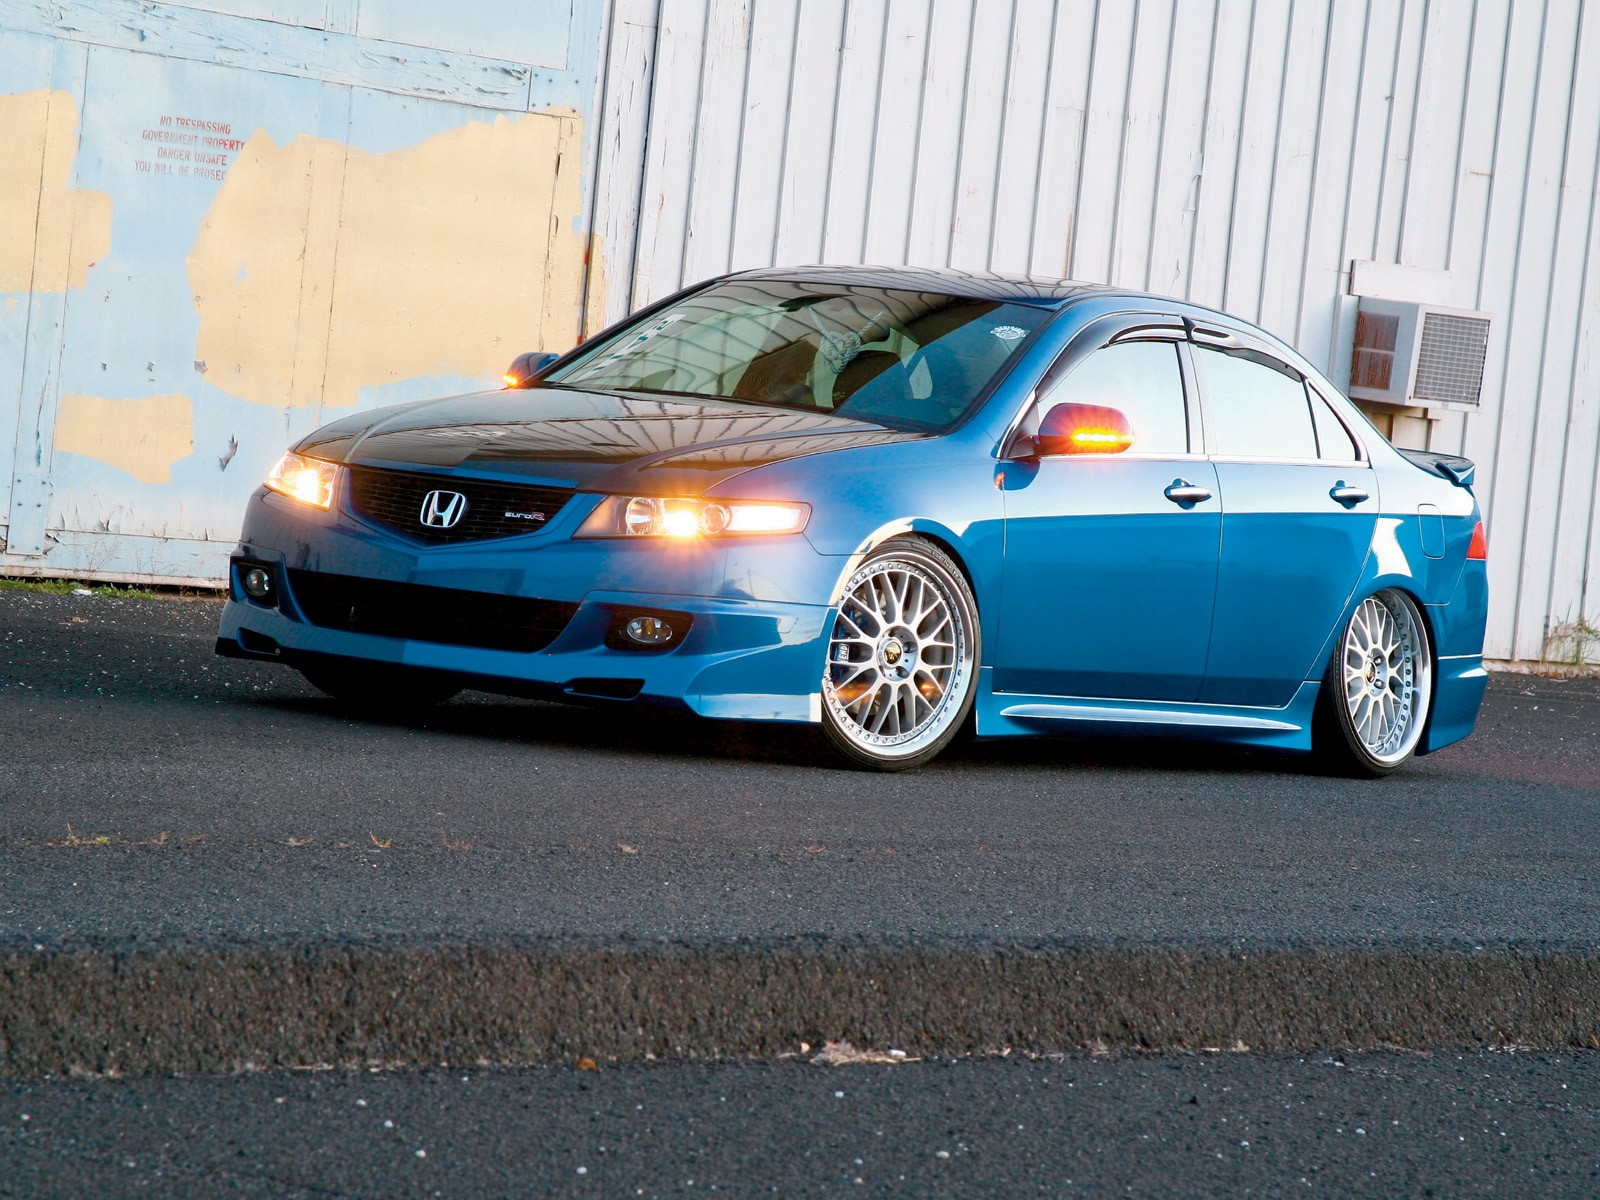 2006 Acura TSX - The Accordiction - Honda Tuning Magazine